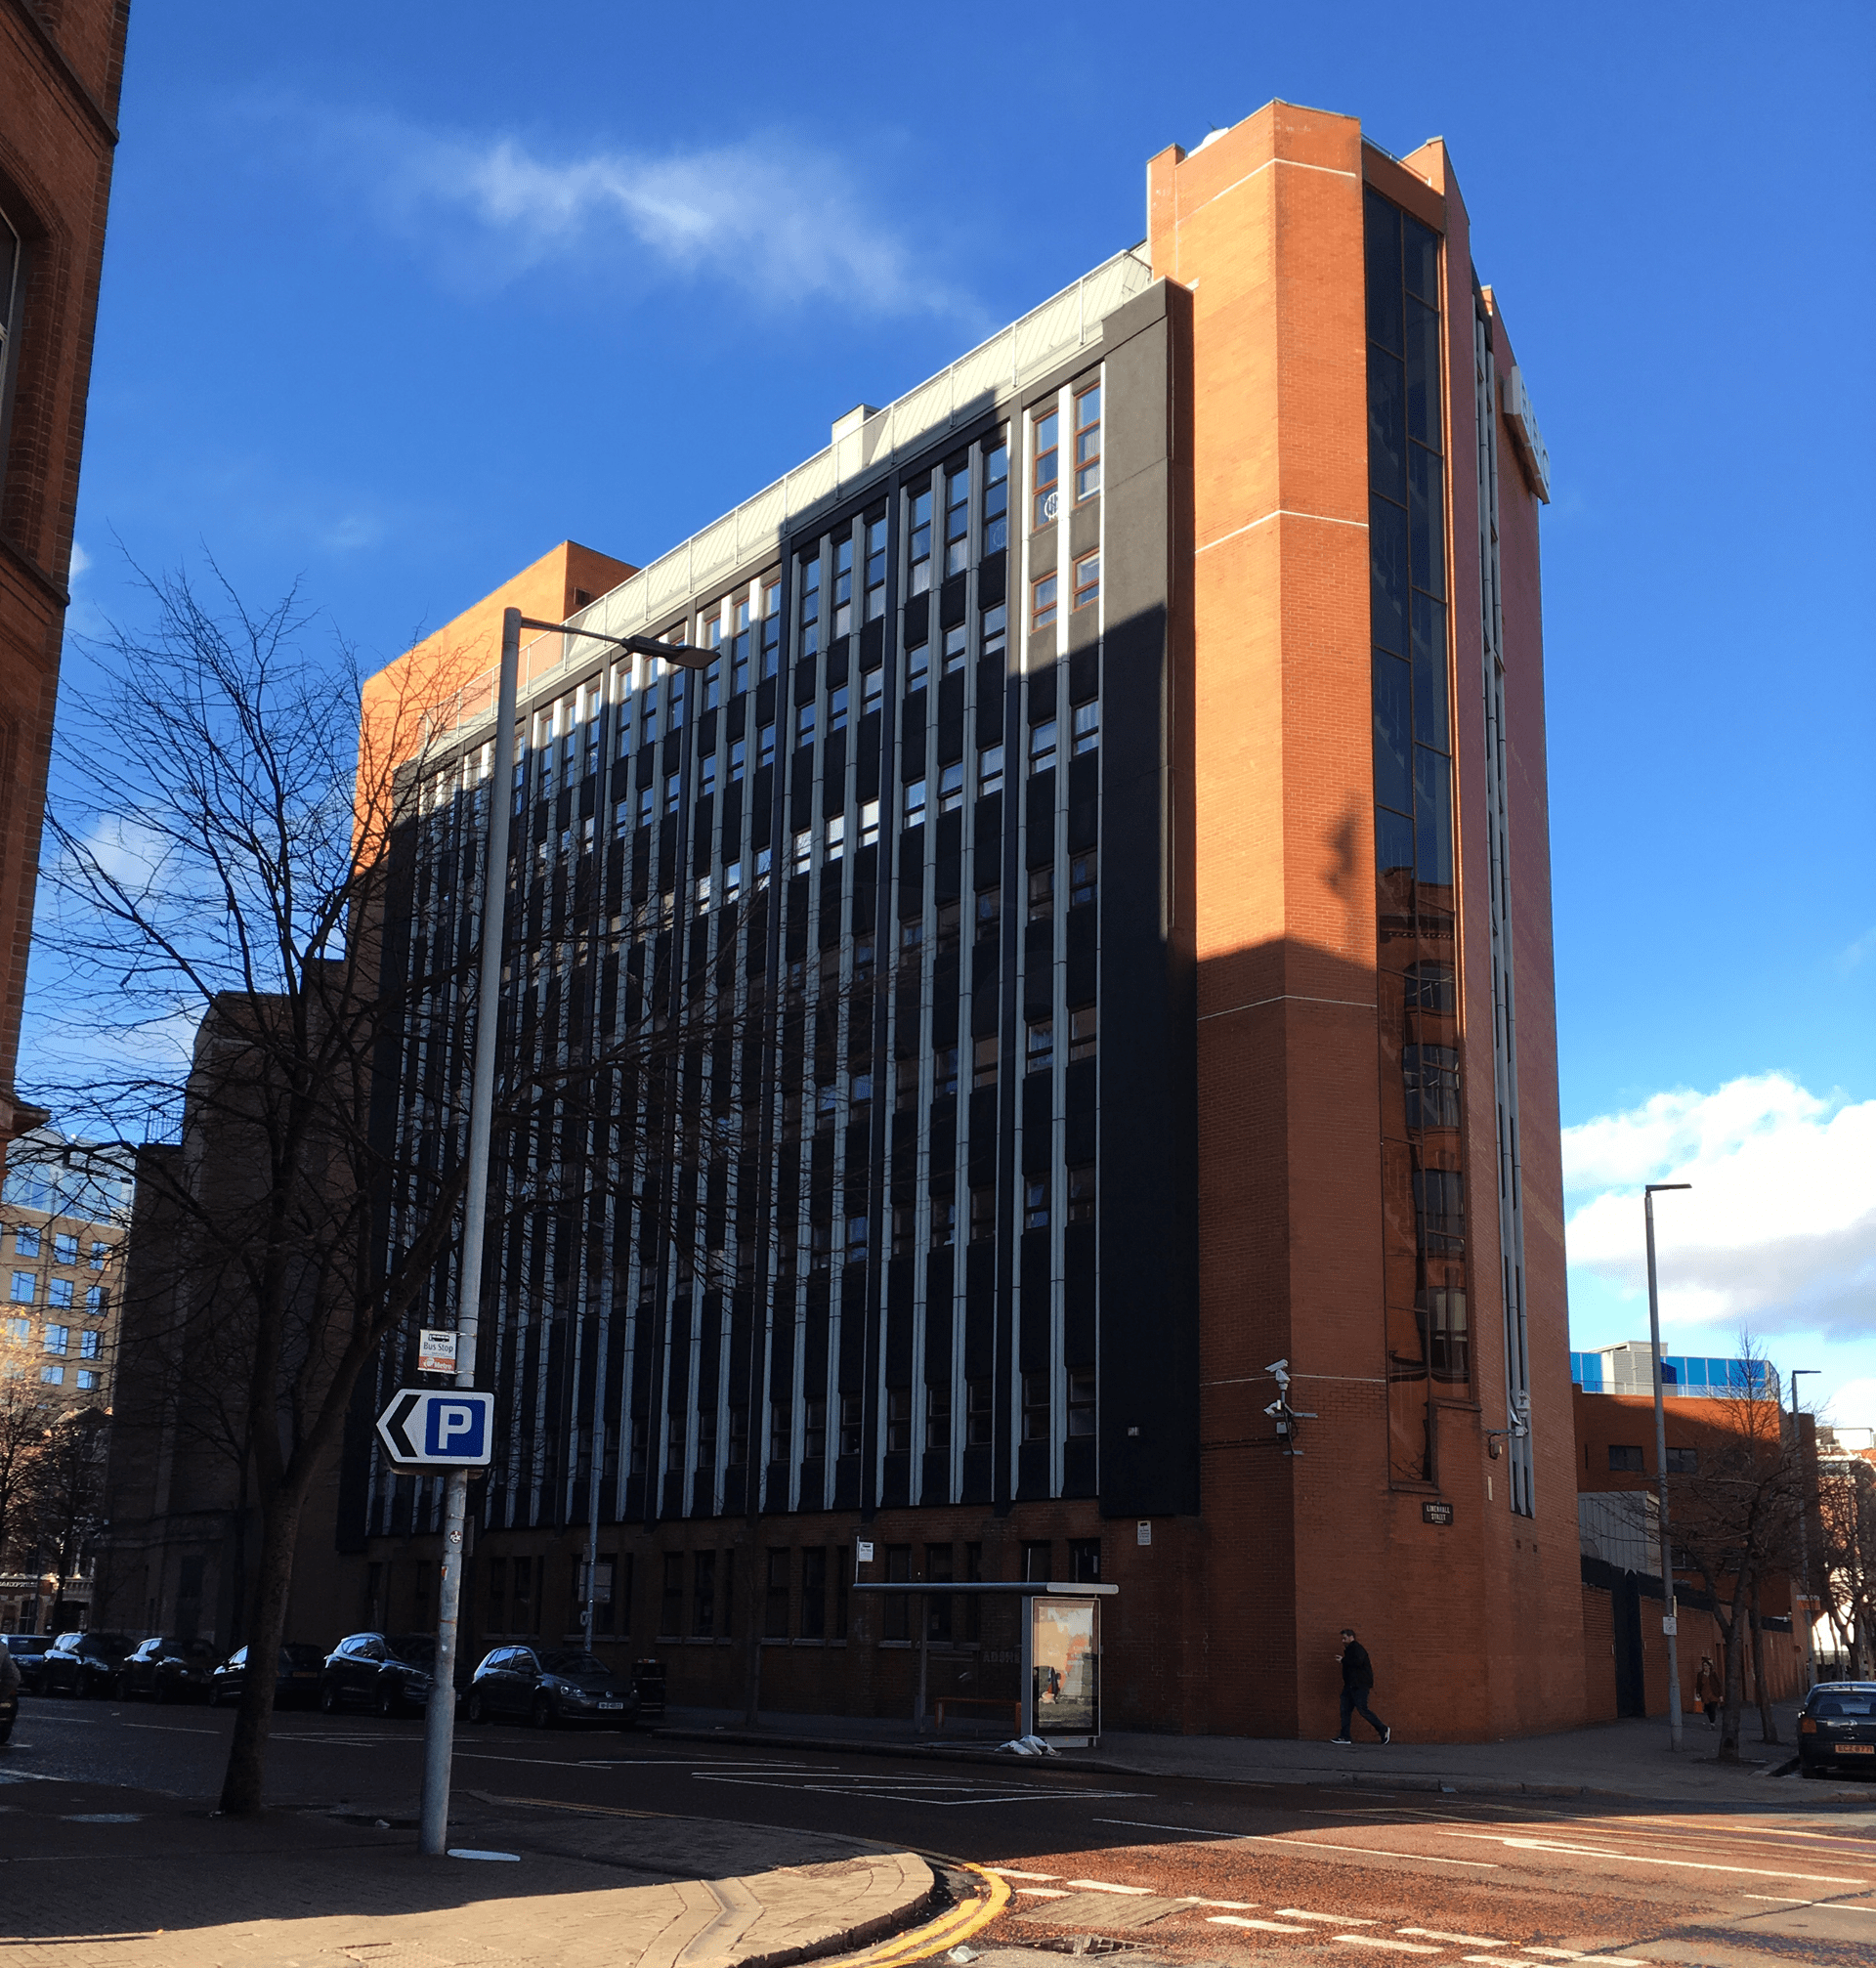 PICTURED: BBC Broadcasting House, Belfast (11th November 2018). This is the front of the Office Block.